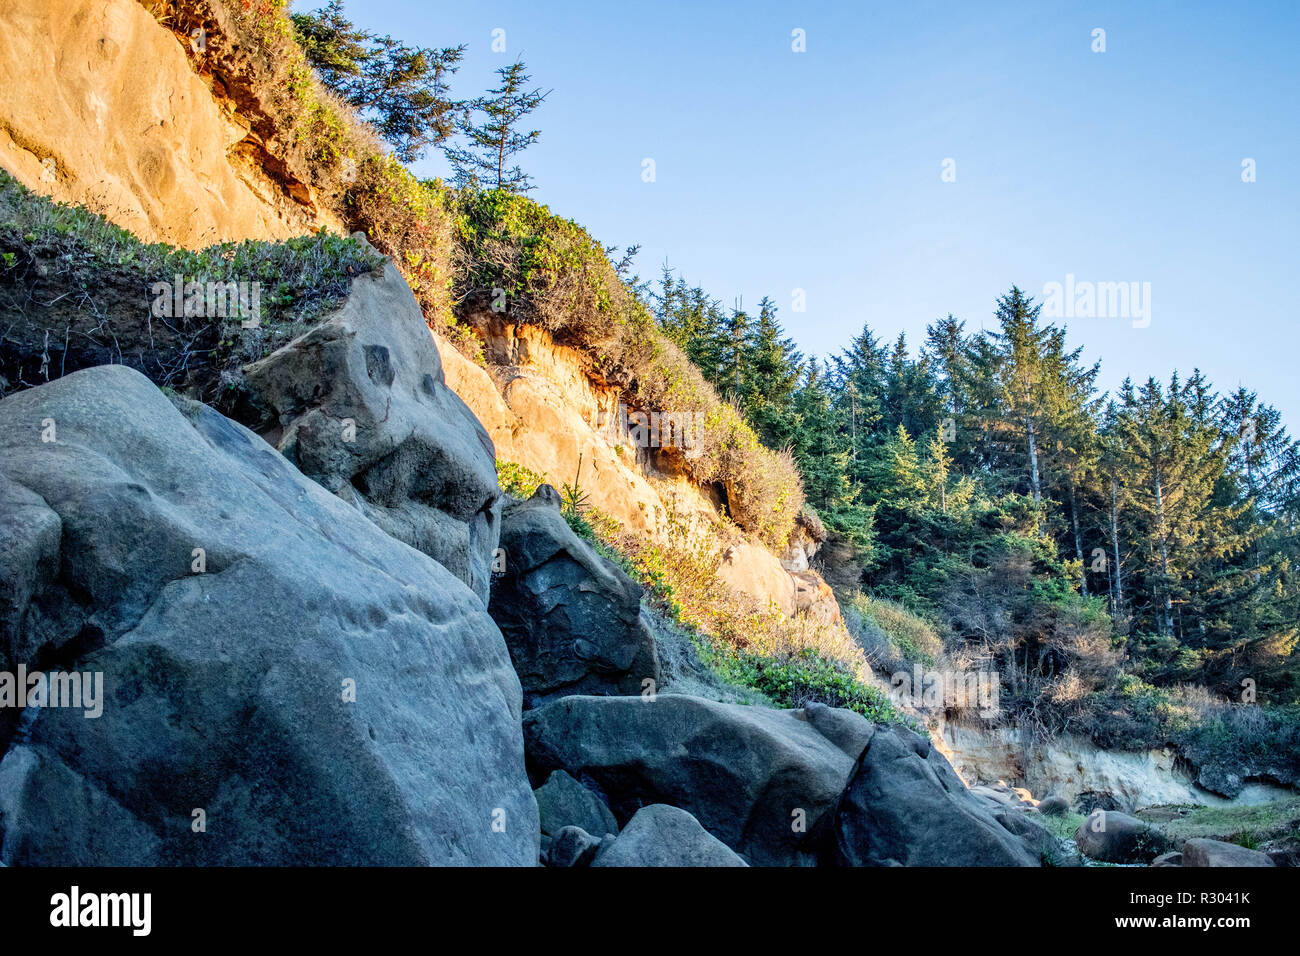 A dense conifer forest overlooks a rocky beach at sunset near Coos Bay, Oregon. - Stock Image